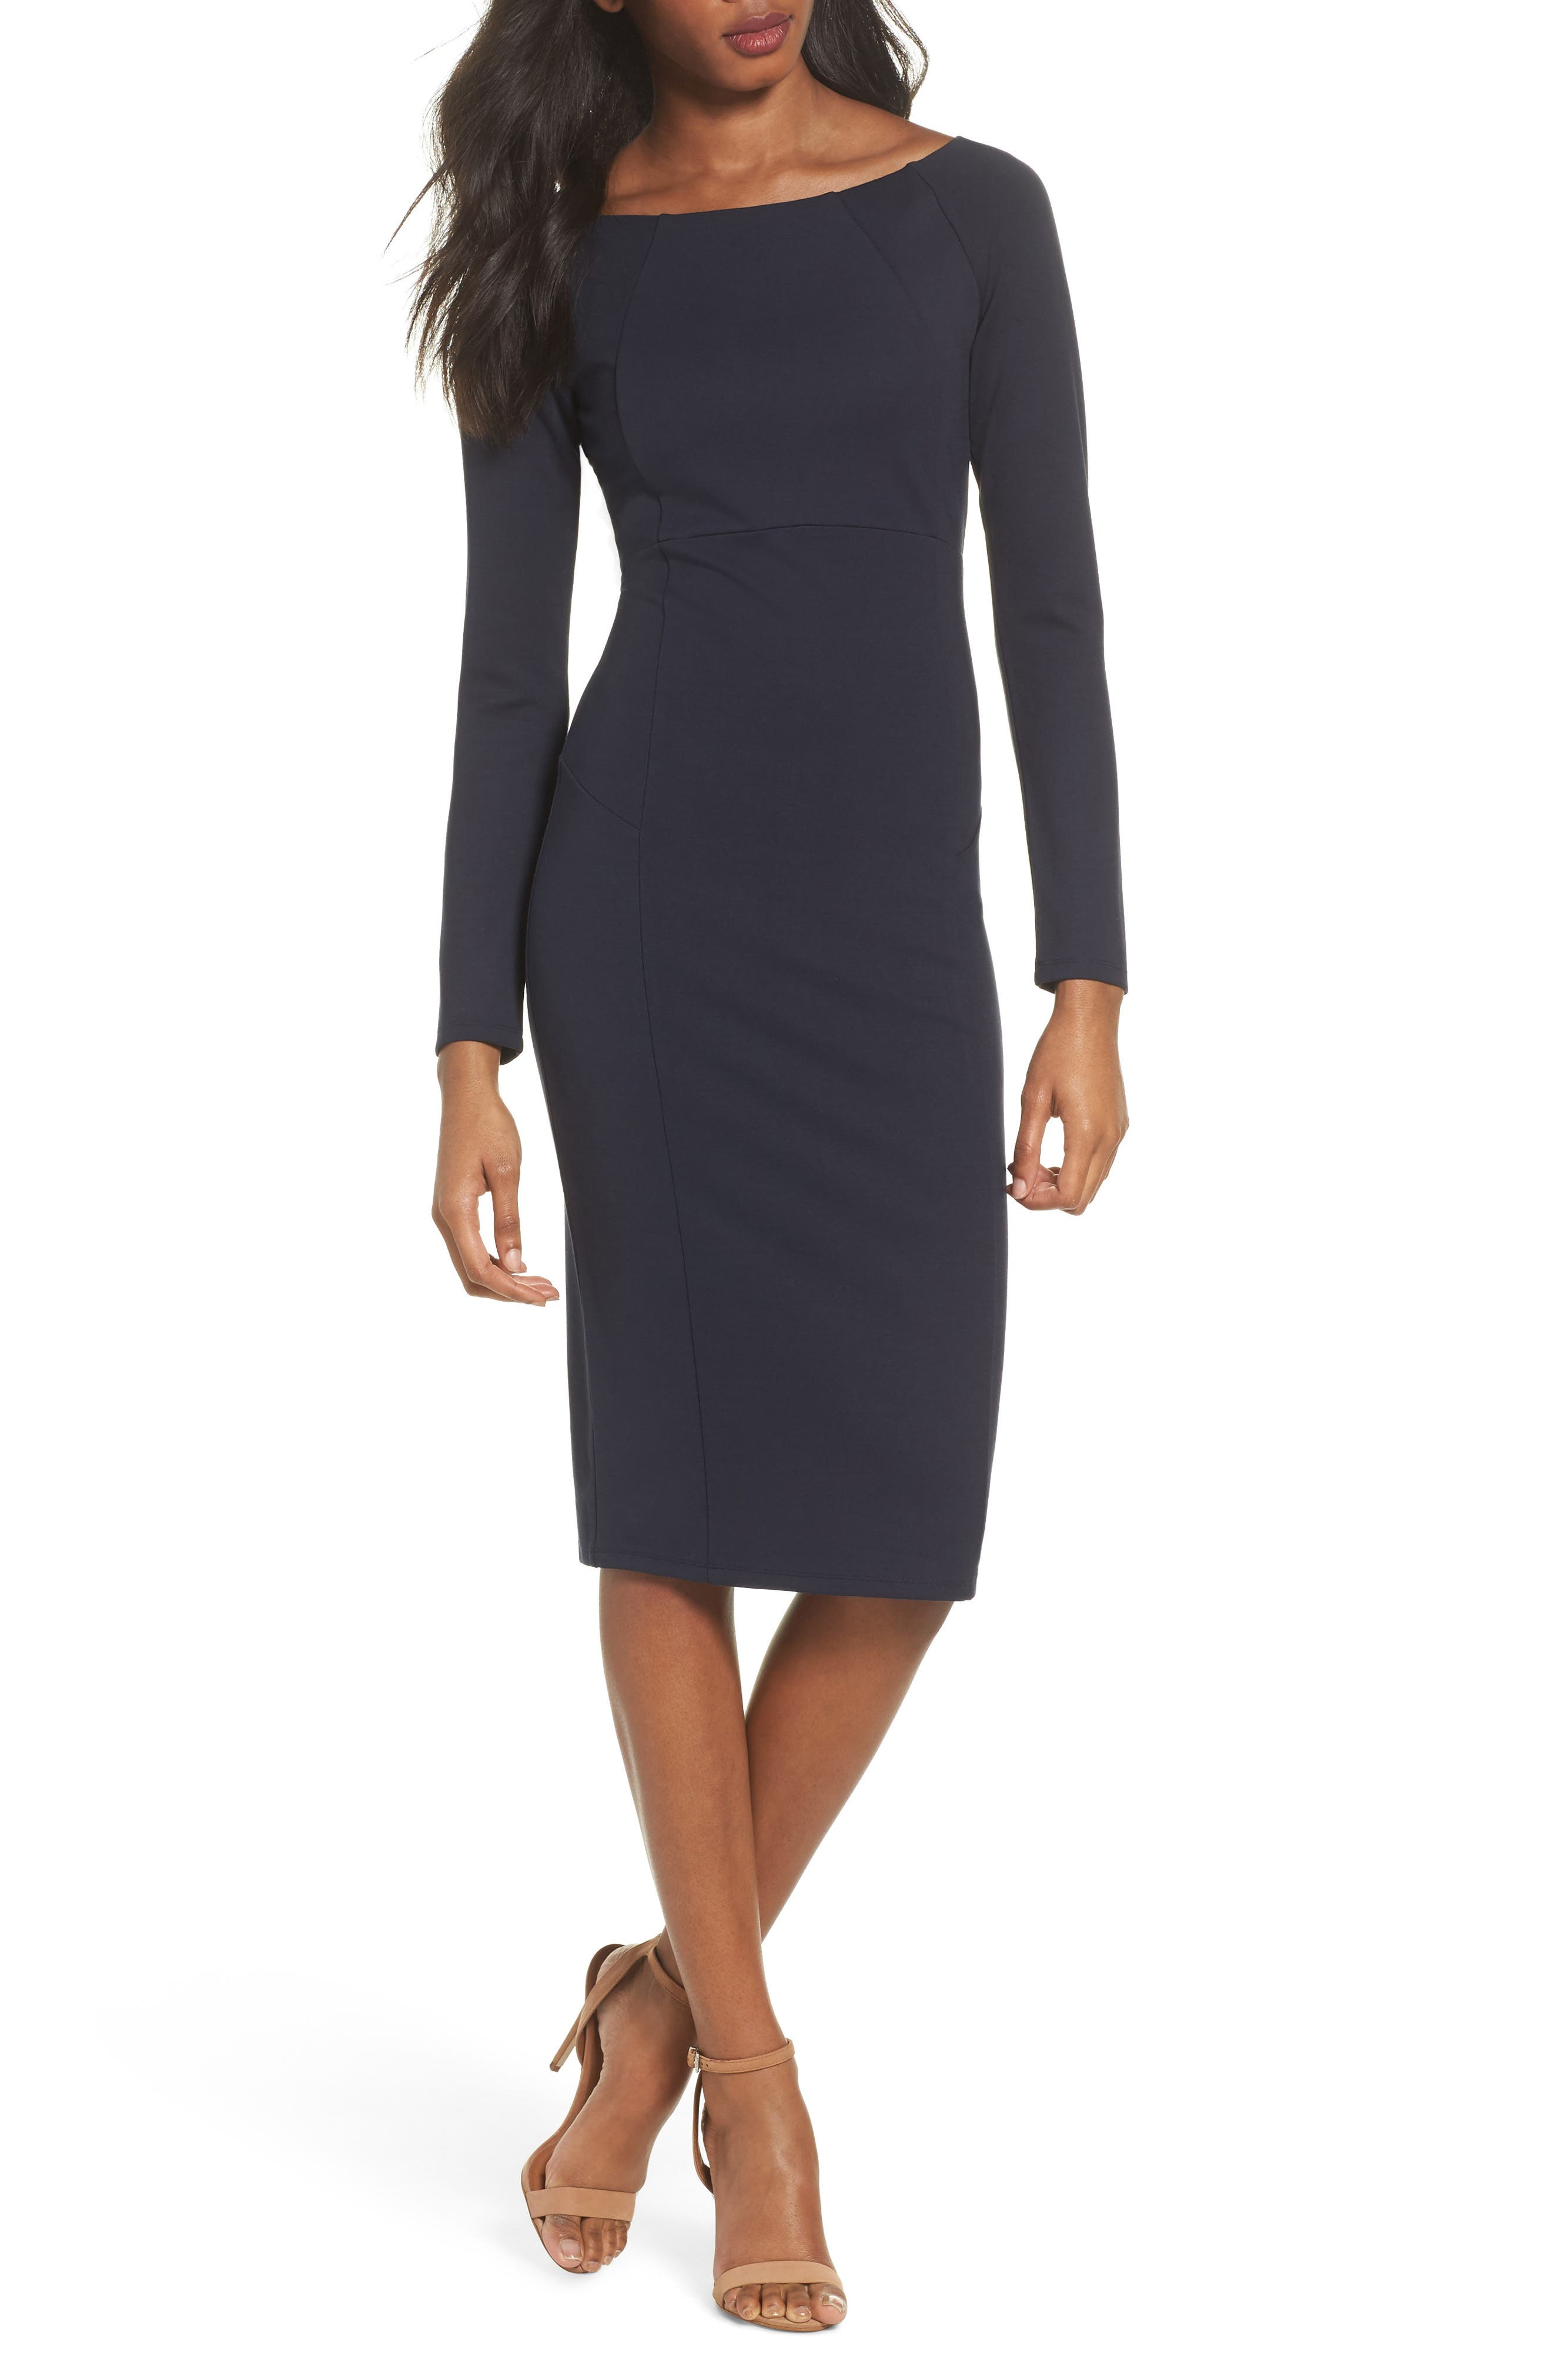 Maile Sheath Dress,                         Main,                         color,